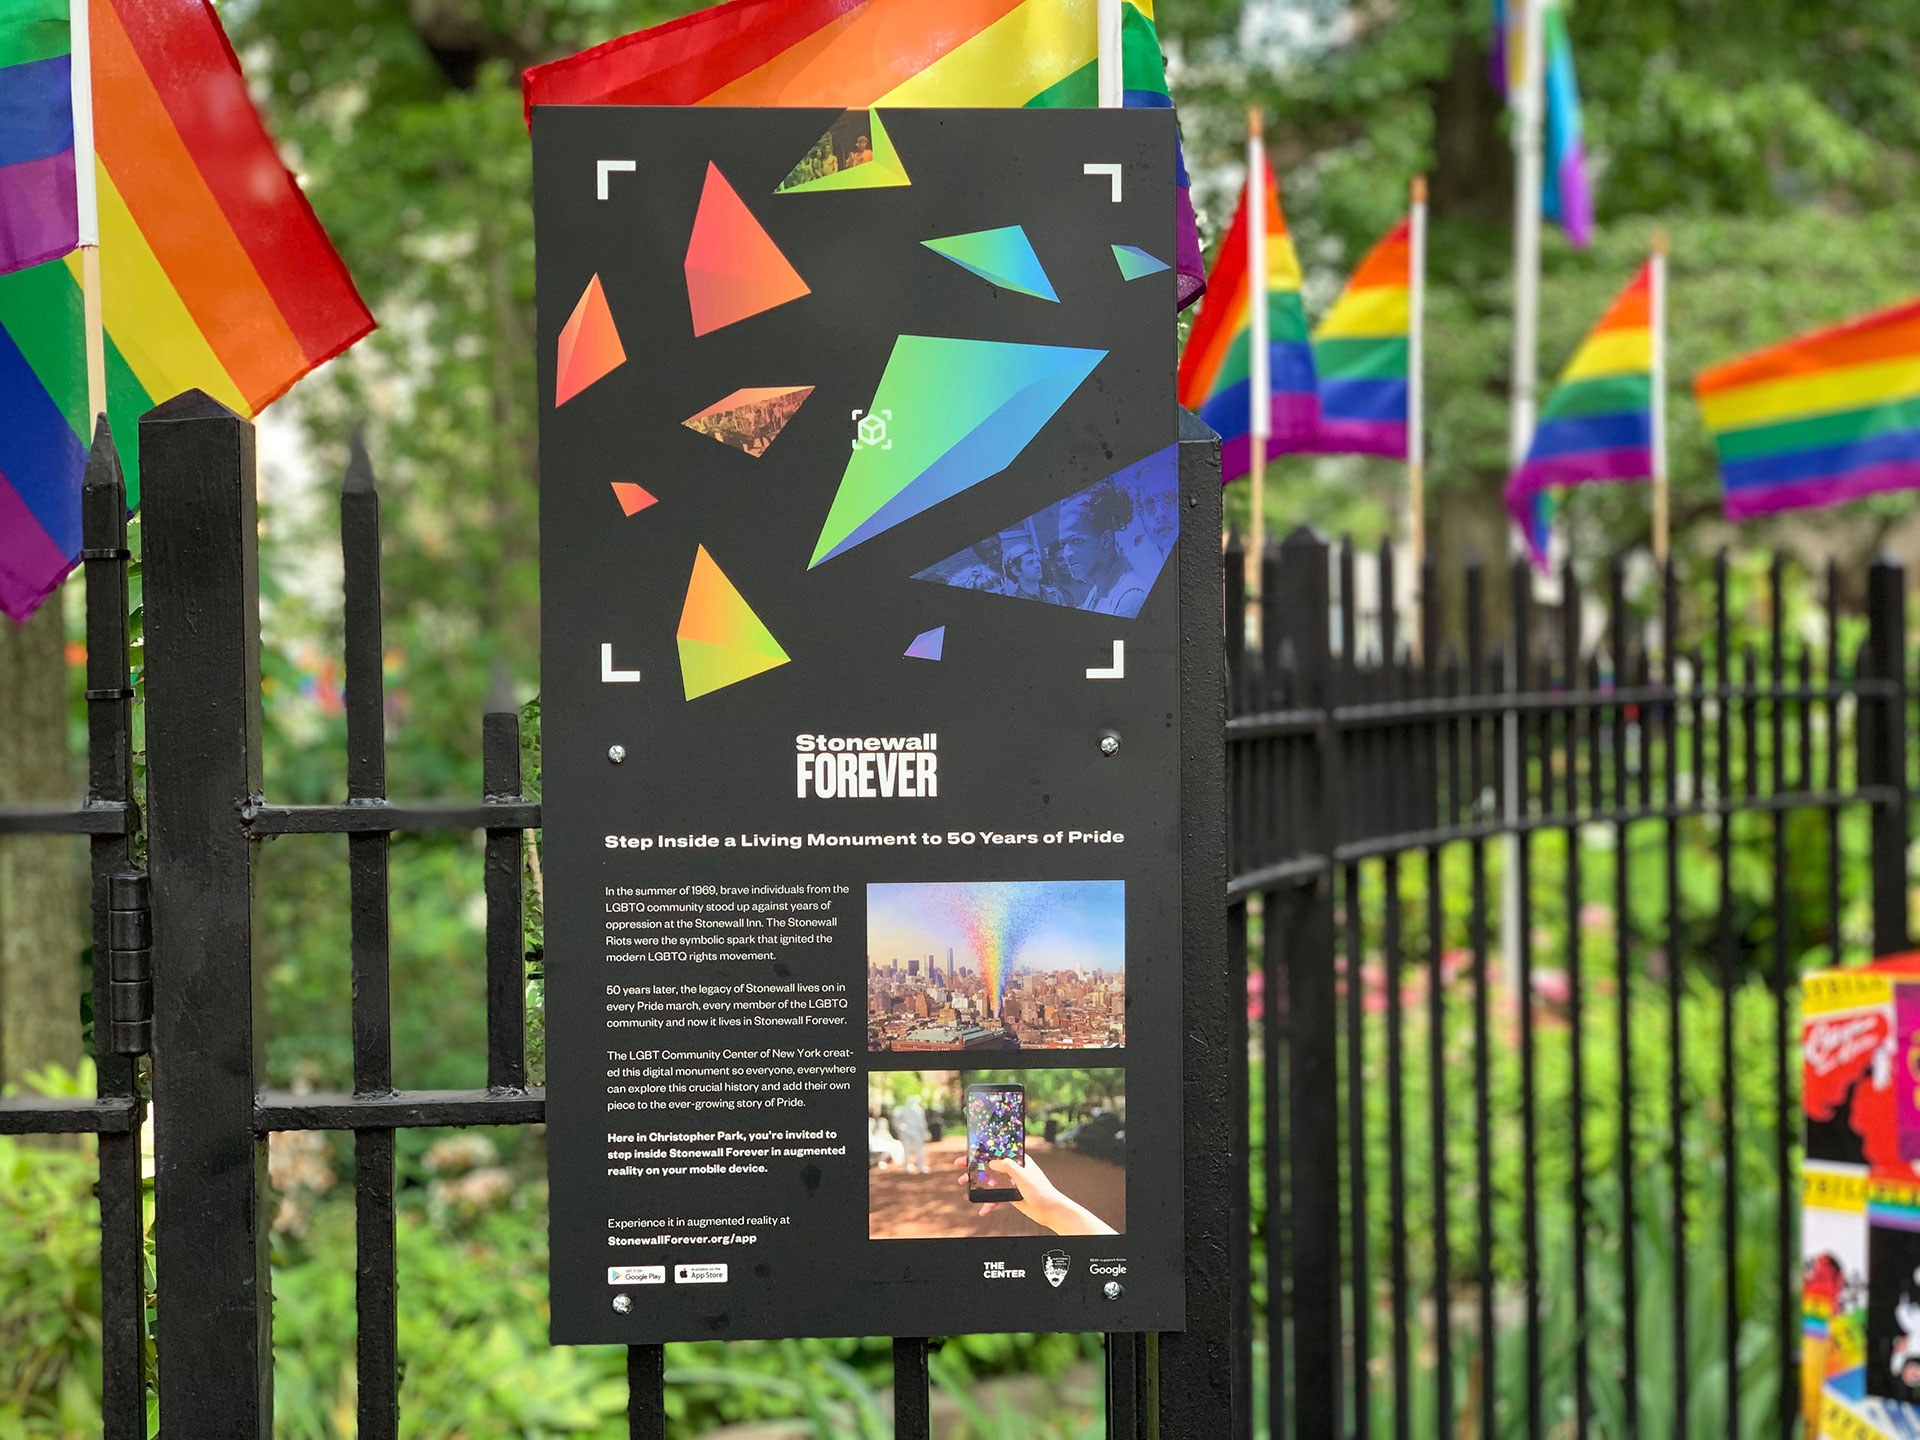 Stonewall Forever Case Study Image 8